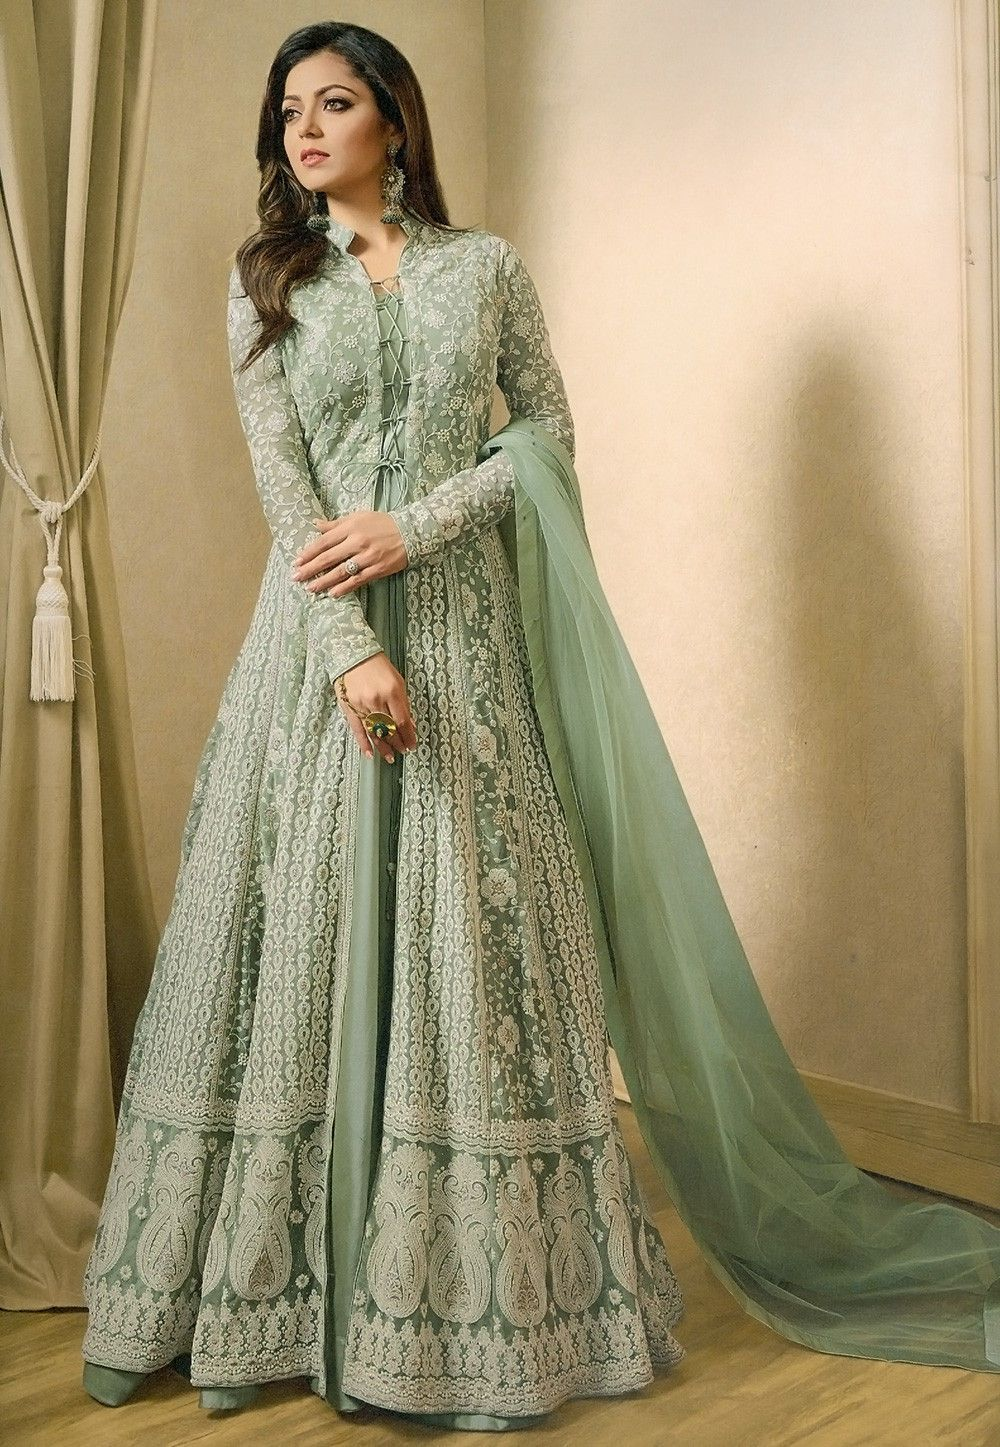 02880b0b61 Buy Embroidered Net Abaya Style Suit in Pastel Green online, Item code:  KCH1293, Color: Green, Occasion: Wedding, Bollywood Theme, Work: Designer,  ...